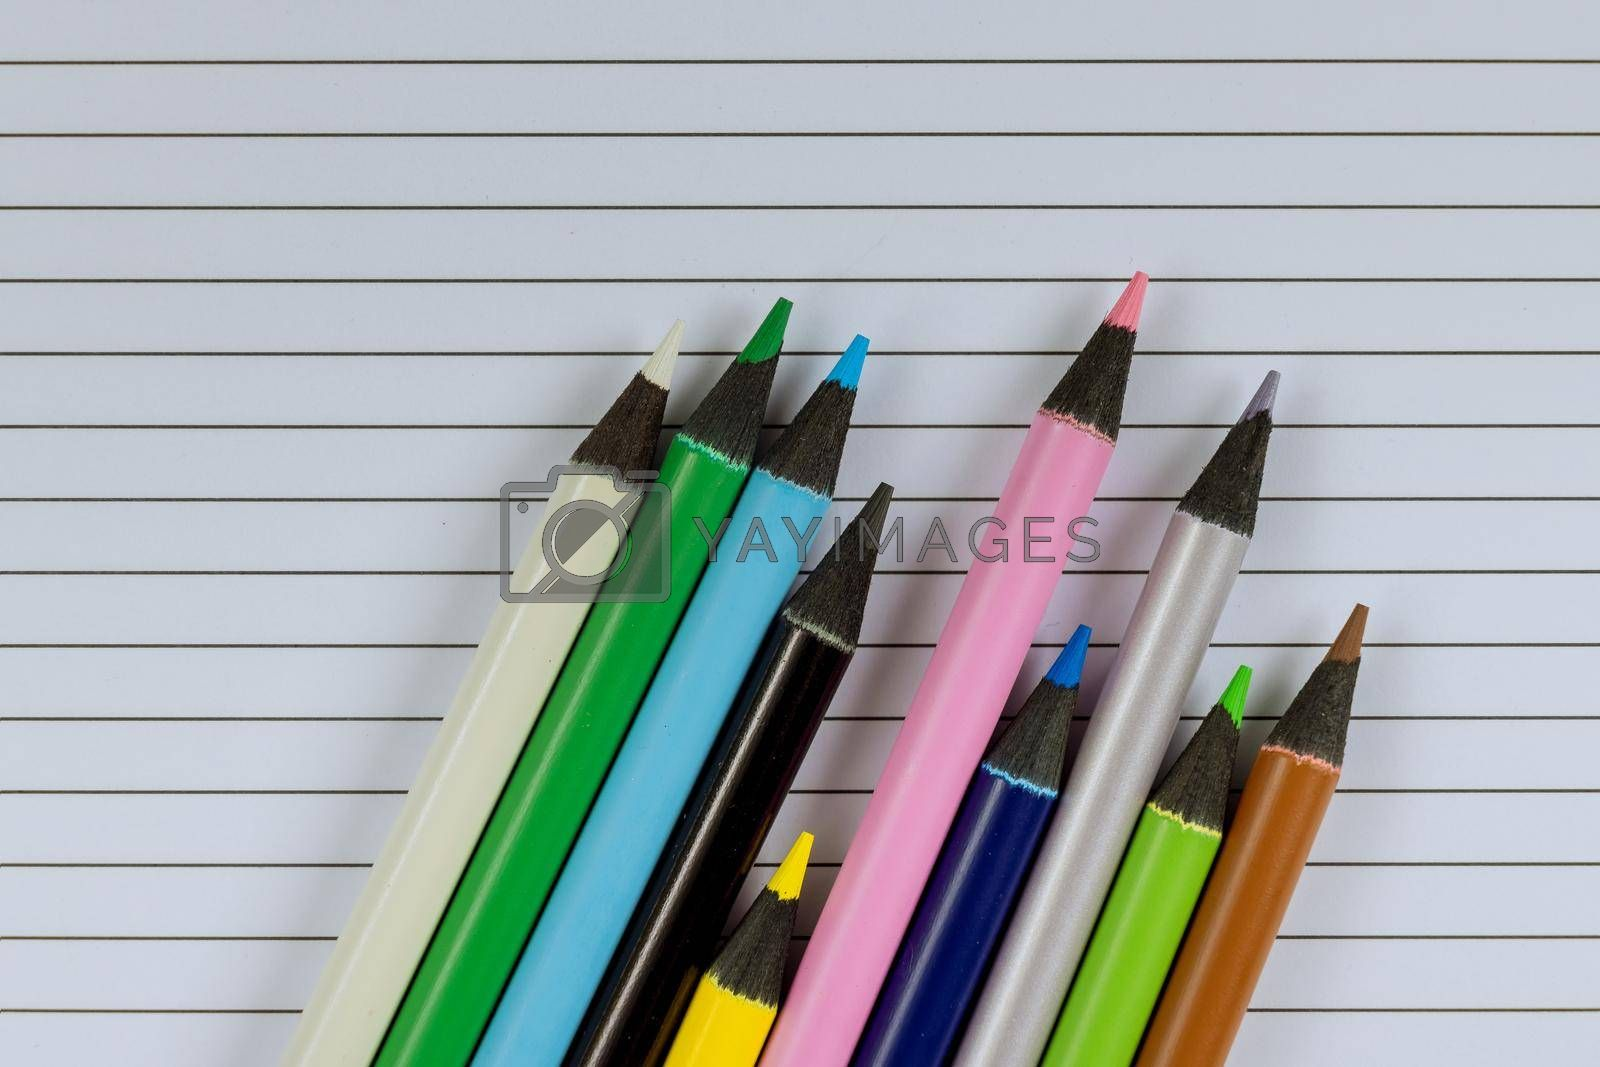 School times in assortment of various school supplies items on stationery equipment